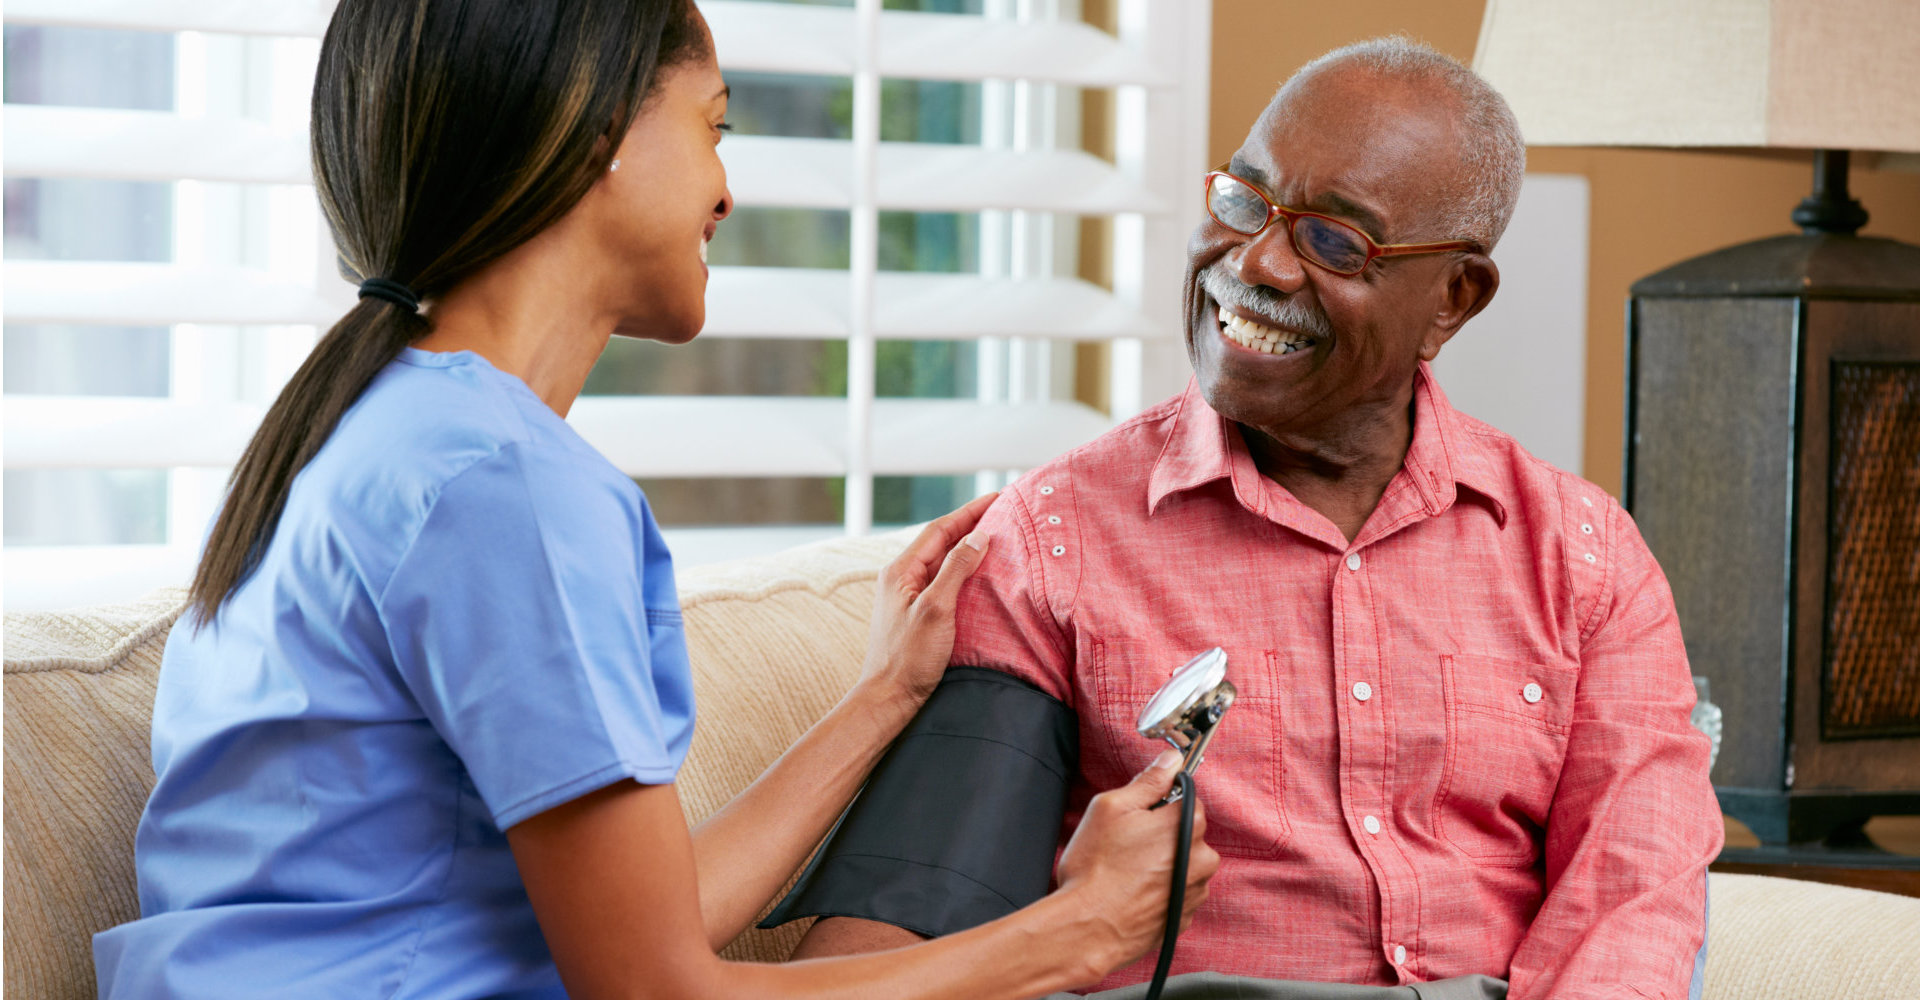 Nurse Visiting Senior Male Patient At Home Smiling